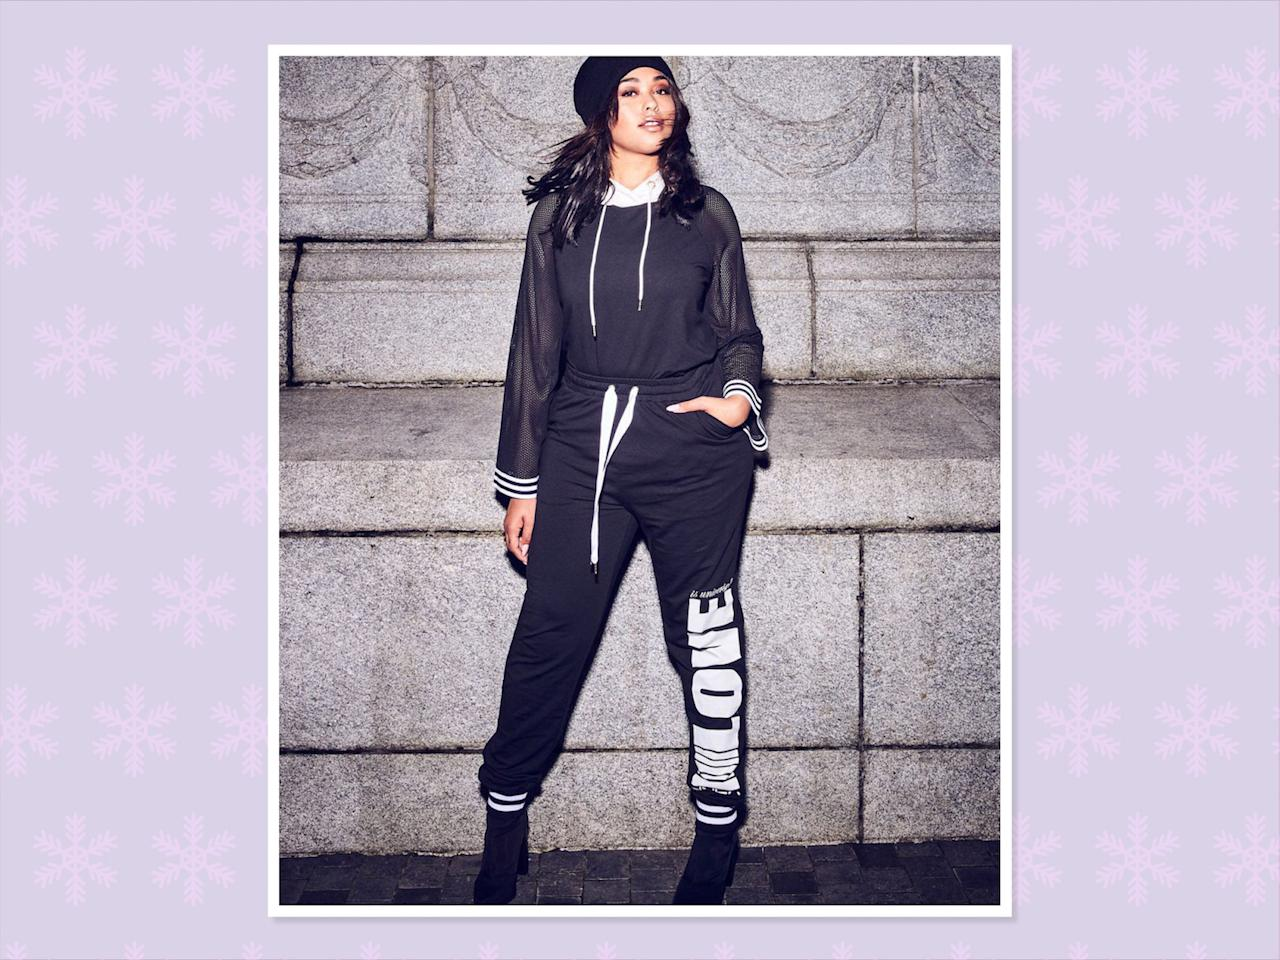 "<p>Nola x Jordyn Woods Harem Jogger Pant With Print, $58, <a rel=""nofollow"" href=""https://www.additionelle.com/en-us/nola-x-jordyn-woods-harem-jogger-pant-with-print/771221.html?dwvar_771221_color=Black&cgid=Collections-Jordyn-Woods"">Addition Elle</a> (Photo: Addition Elle) </p>"